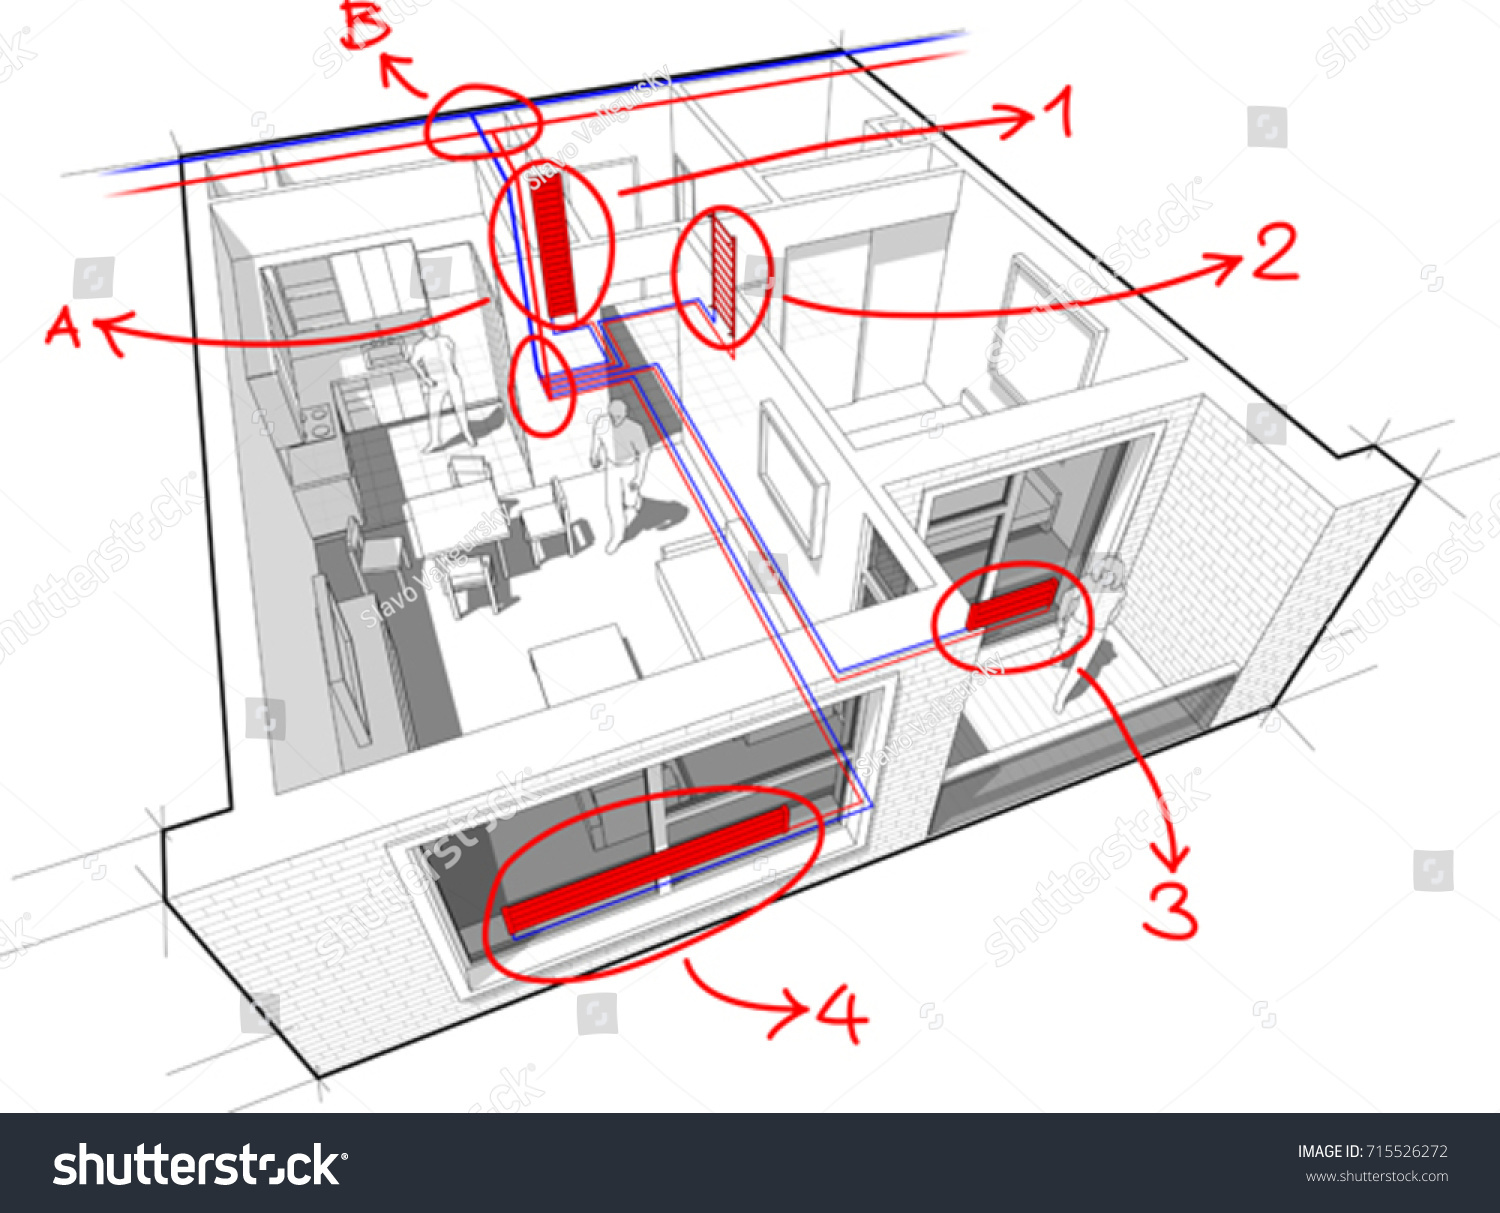 3d of apartment with hot water radiator heating and central heating pipes as source of